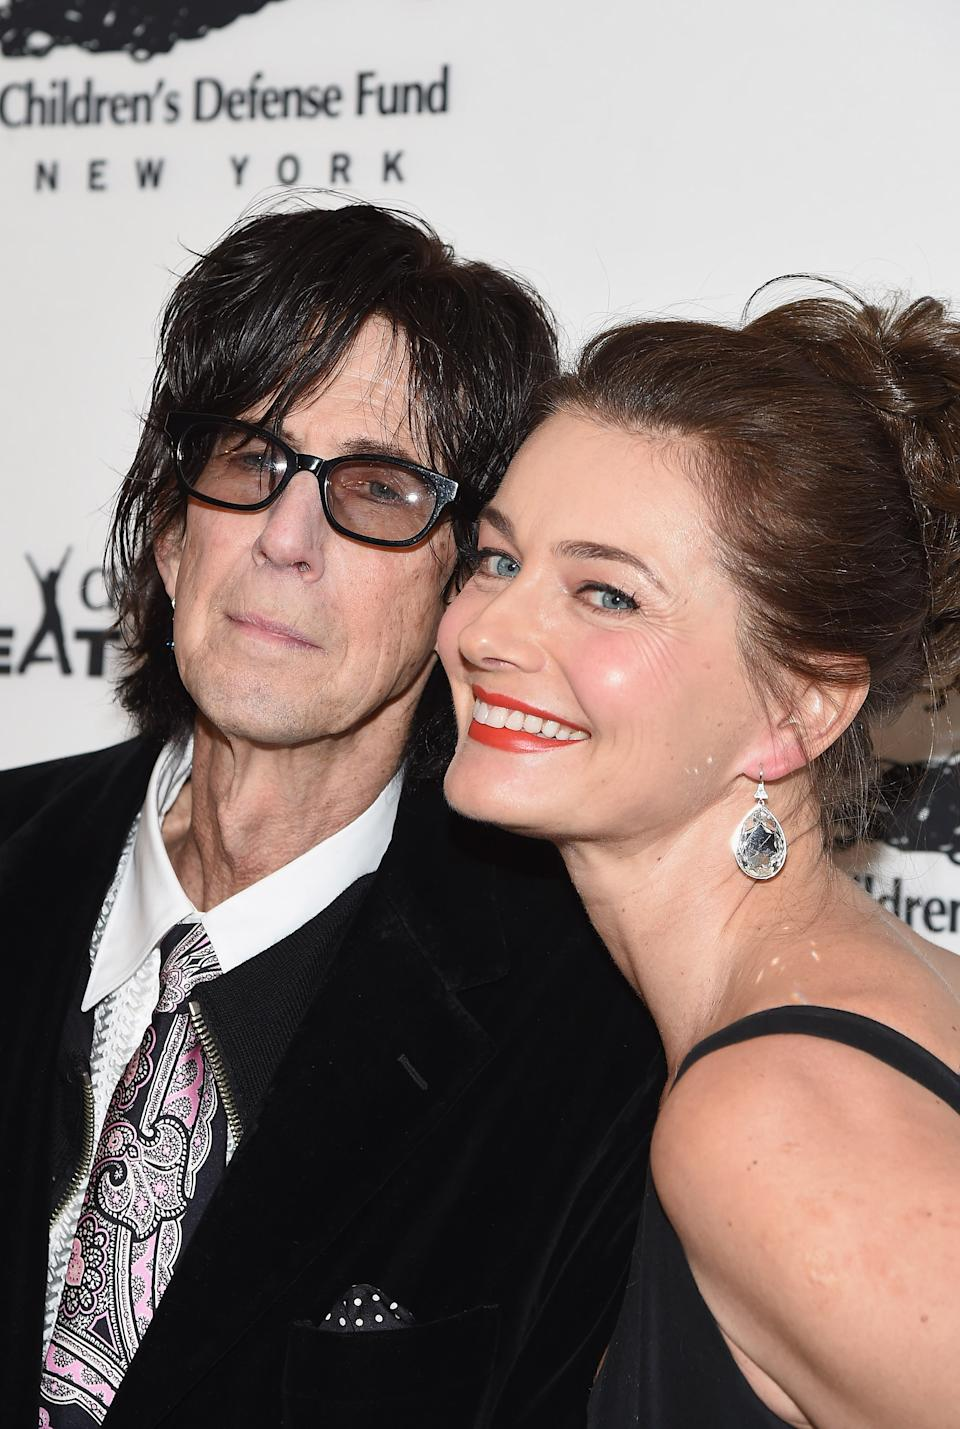 Porizkova (pictured with Ric Ocasek in 2016) has been speaking frankly about her grief and mental health since his death last September. (Photo: Gary Gershoff/WireImage)